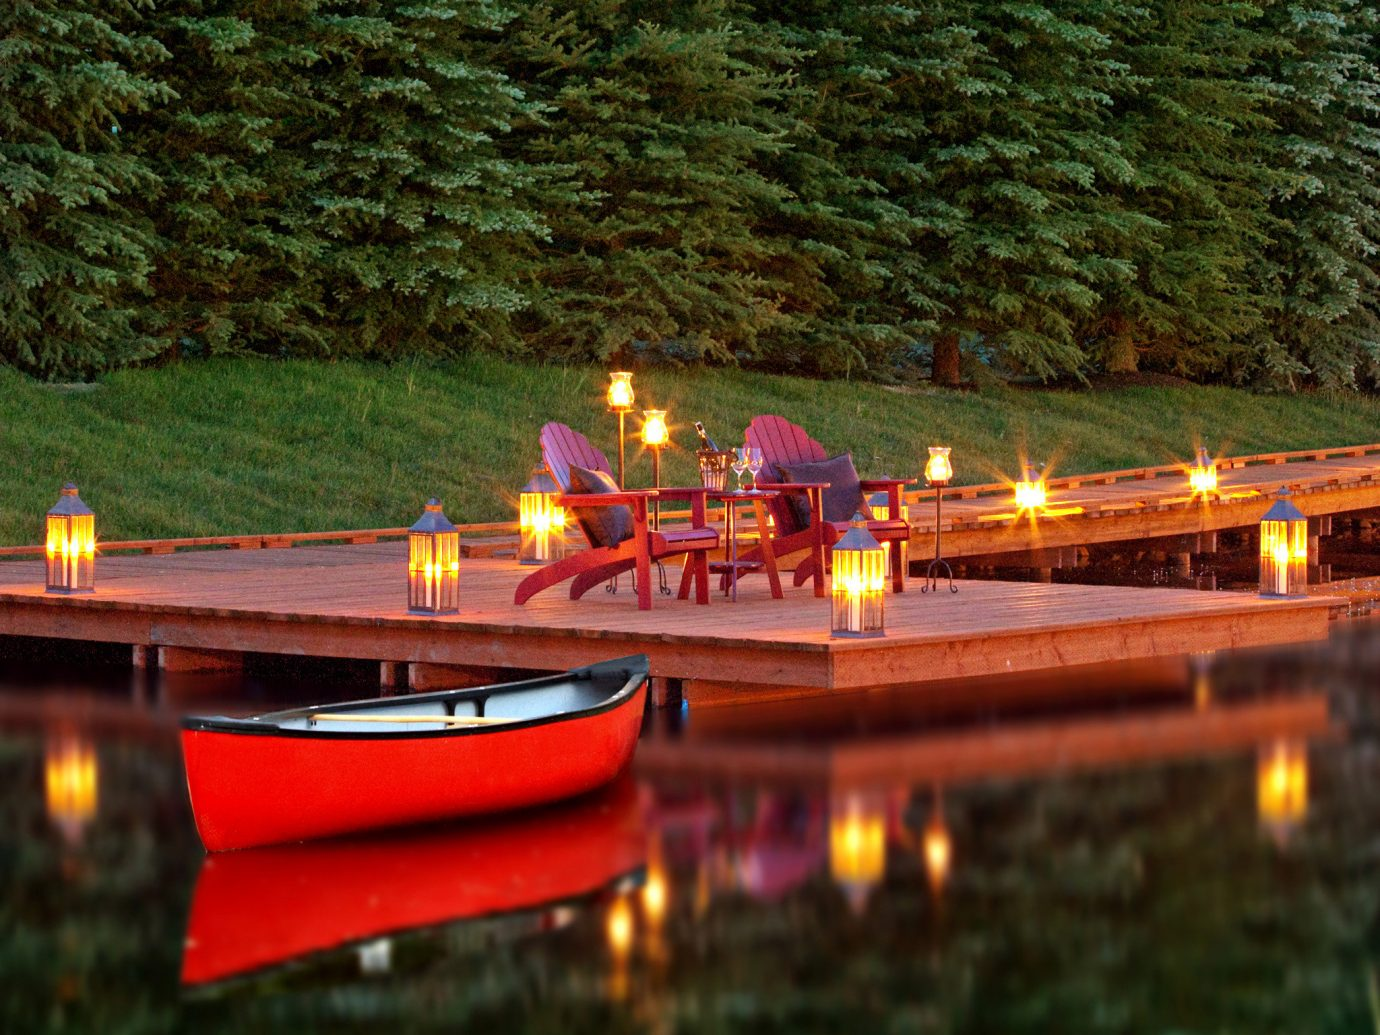 Adventure Boat Budget Country Family Forest Lake Lodge Mountains Outdoor Activities Outdoors River tree water outdoor vehicle watercraft rowing waterway boating watercraft Canal canoe bright colored